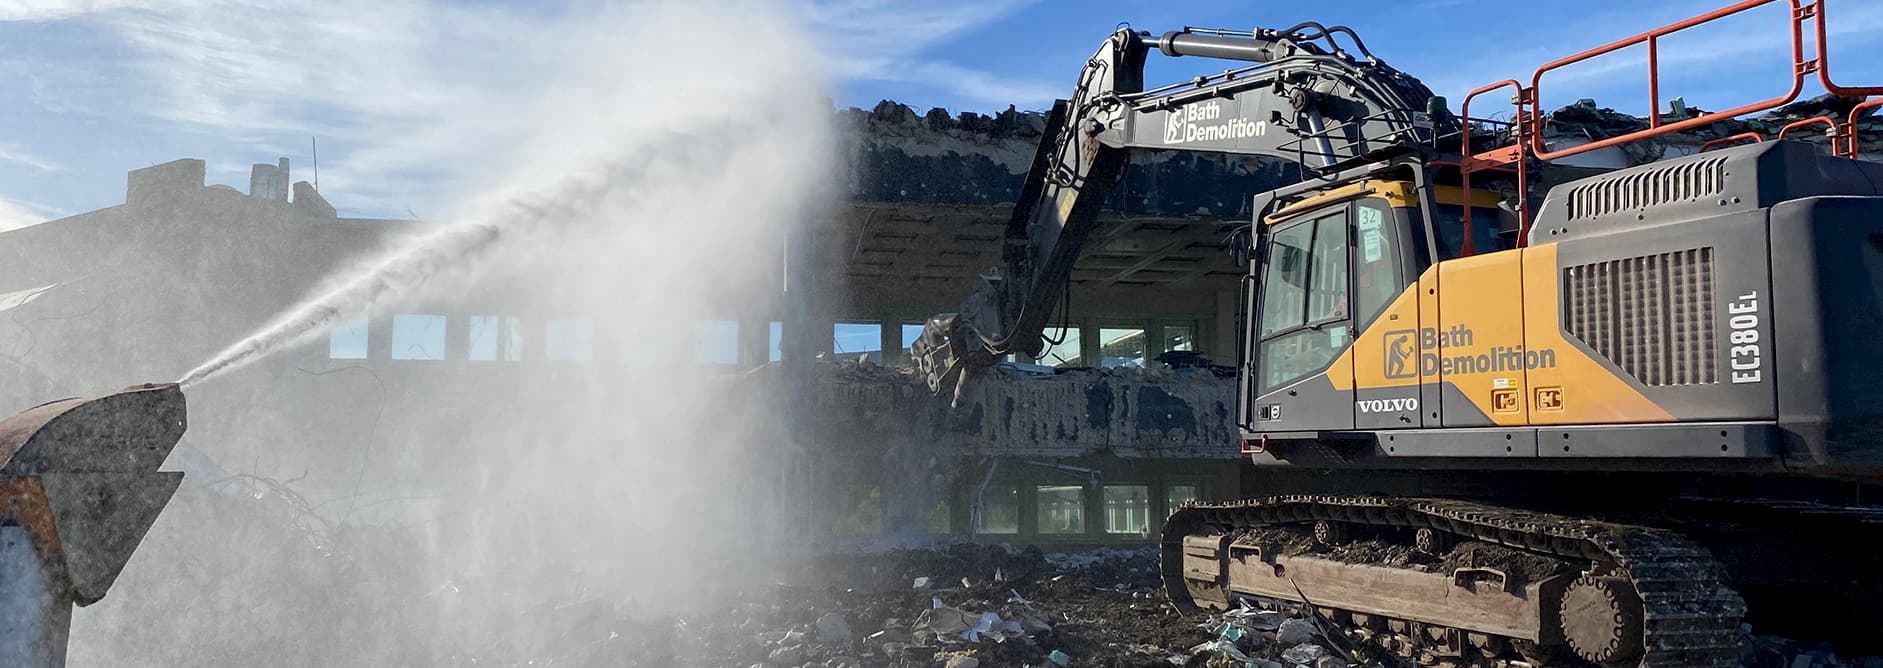 Site Clearance is part of the Demolition Process carried out by the team at Bath Demolition. From Site preparation, to demolition and site clearance, Bath Demo can help